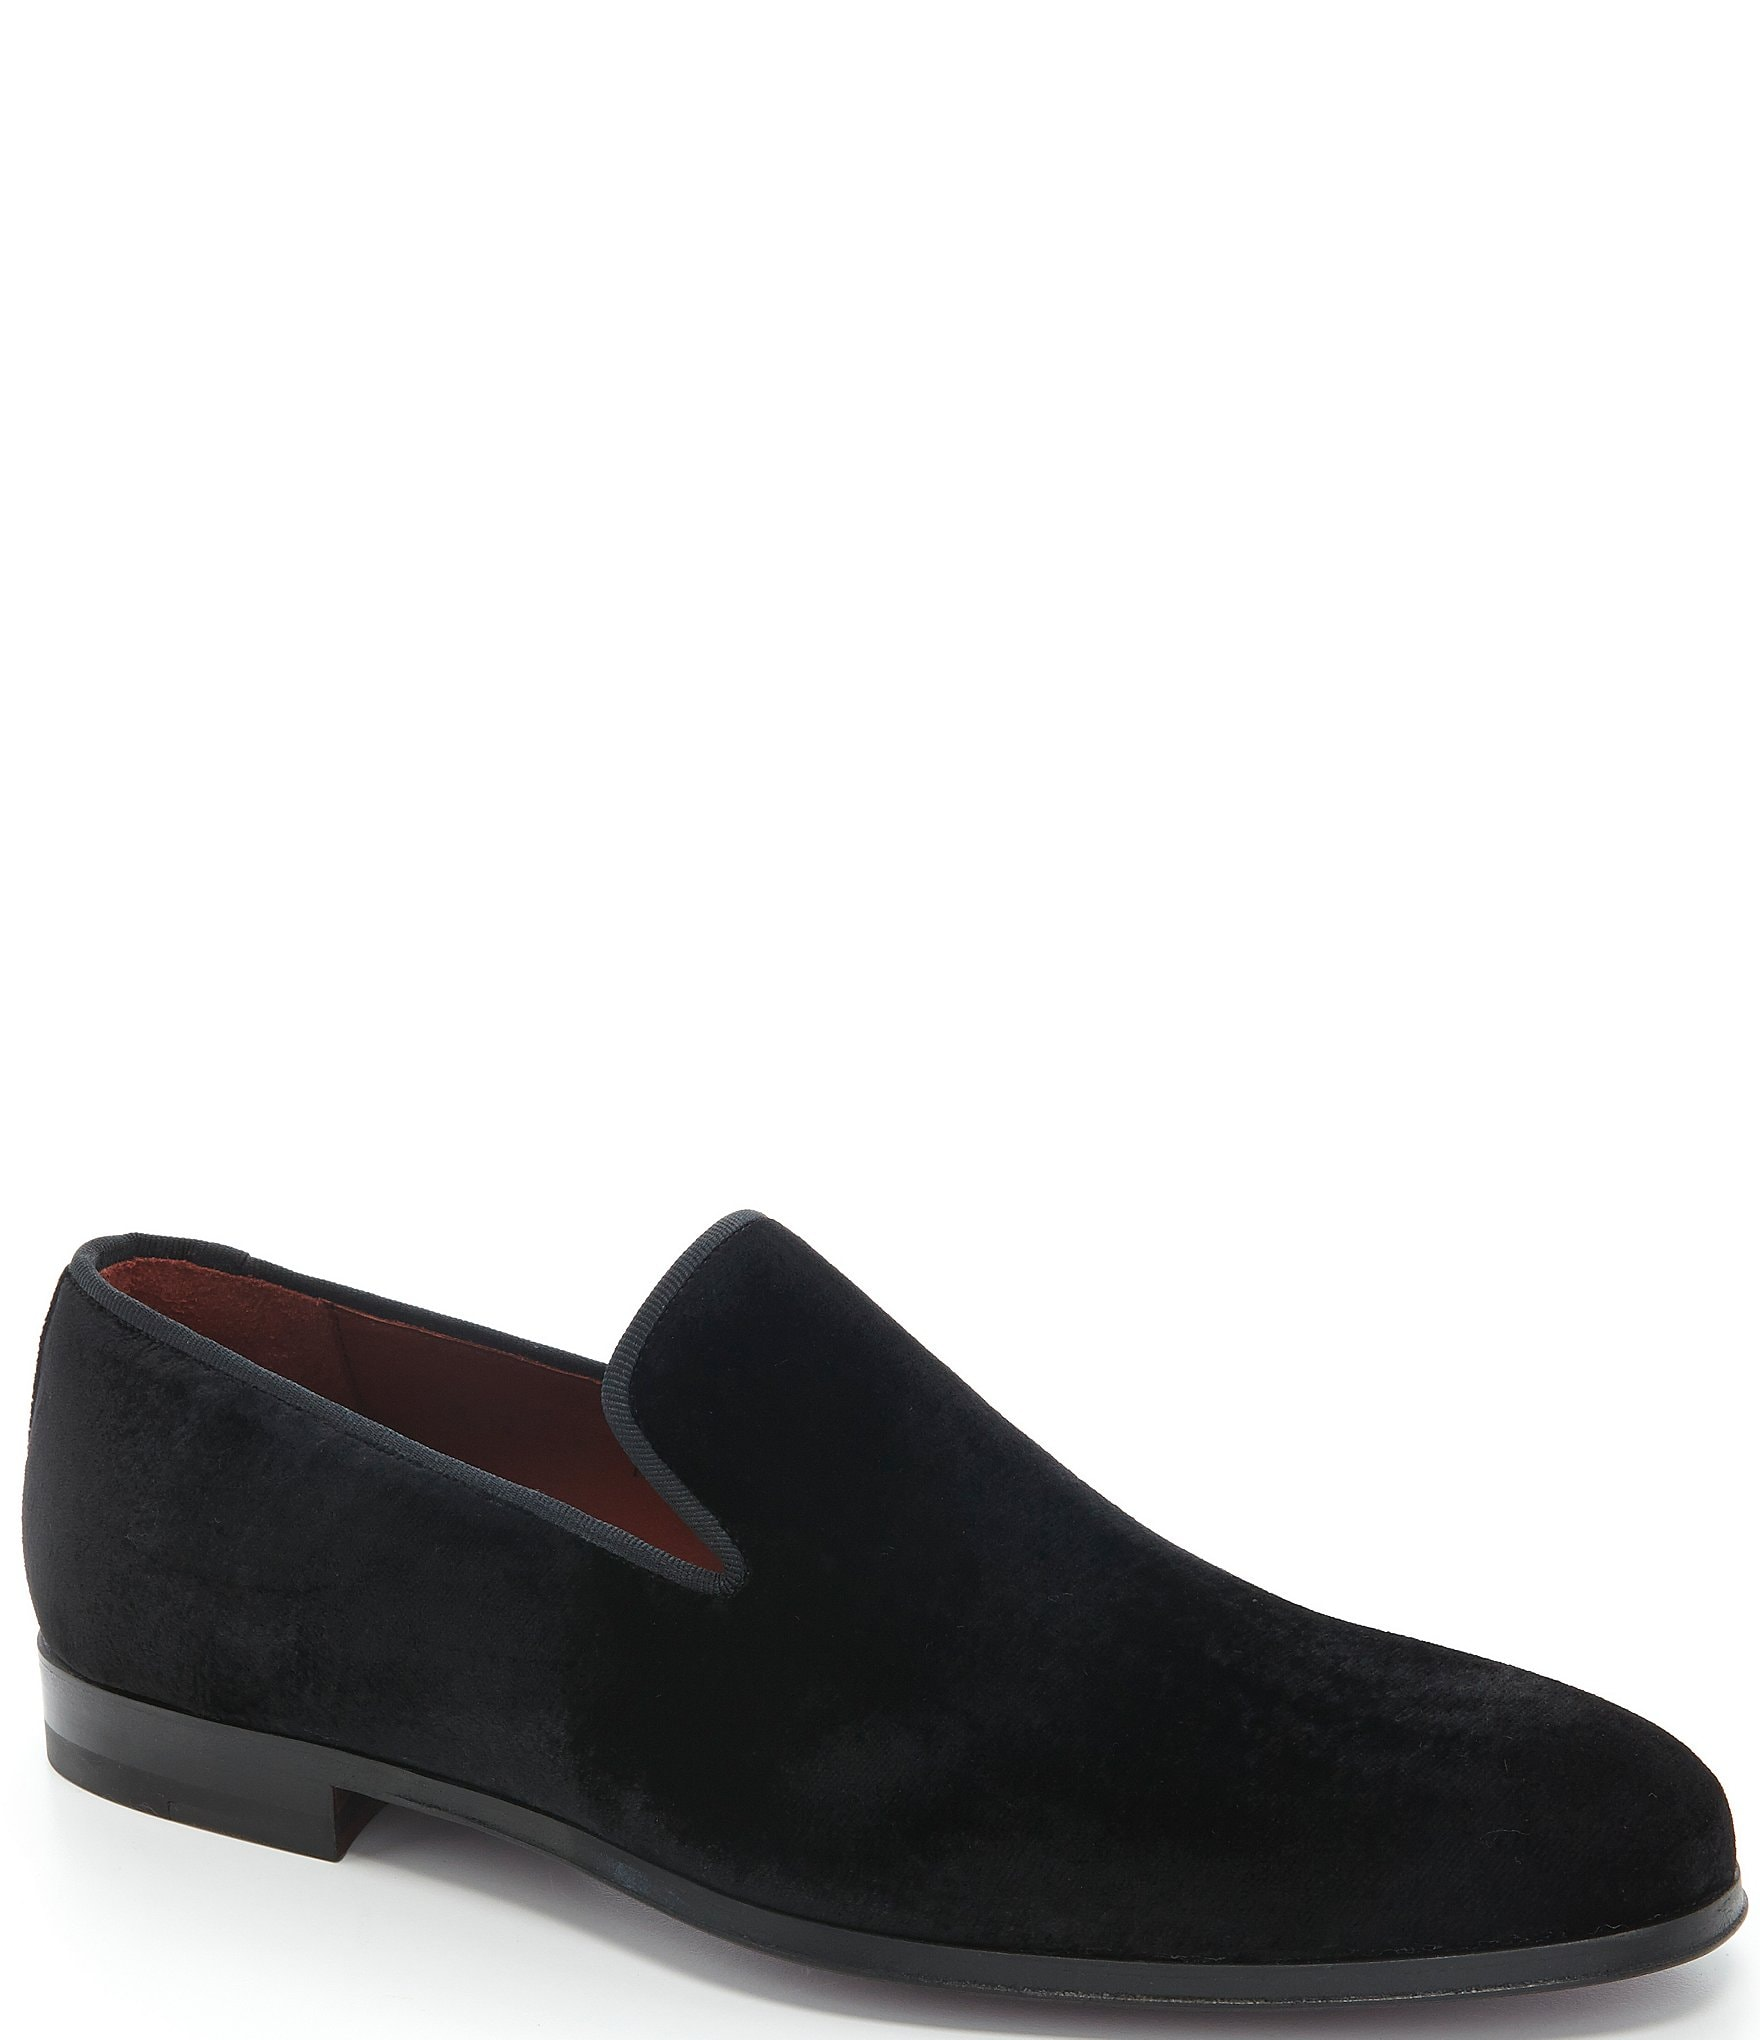 Sutton Velvet Slip On Loafers fQoHAS67tD